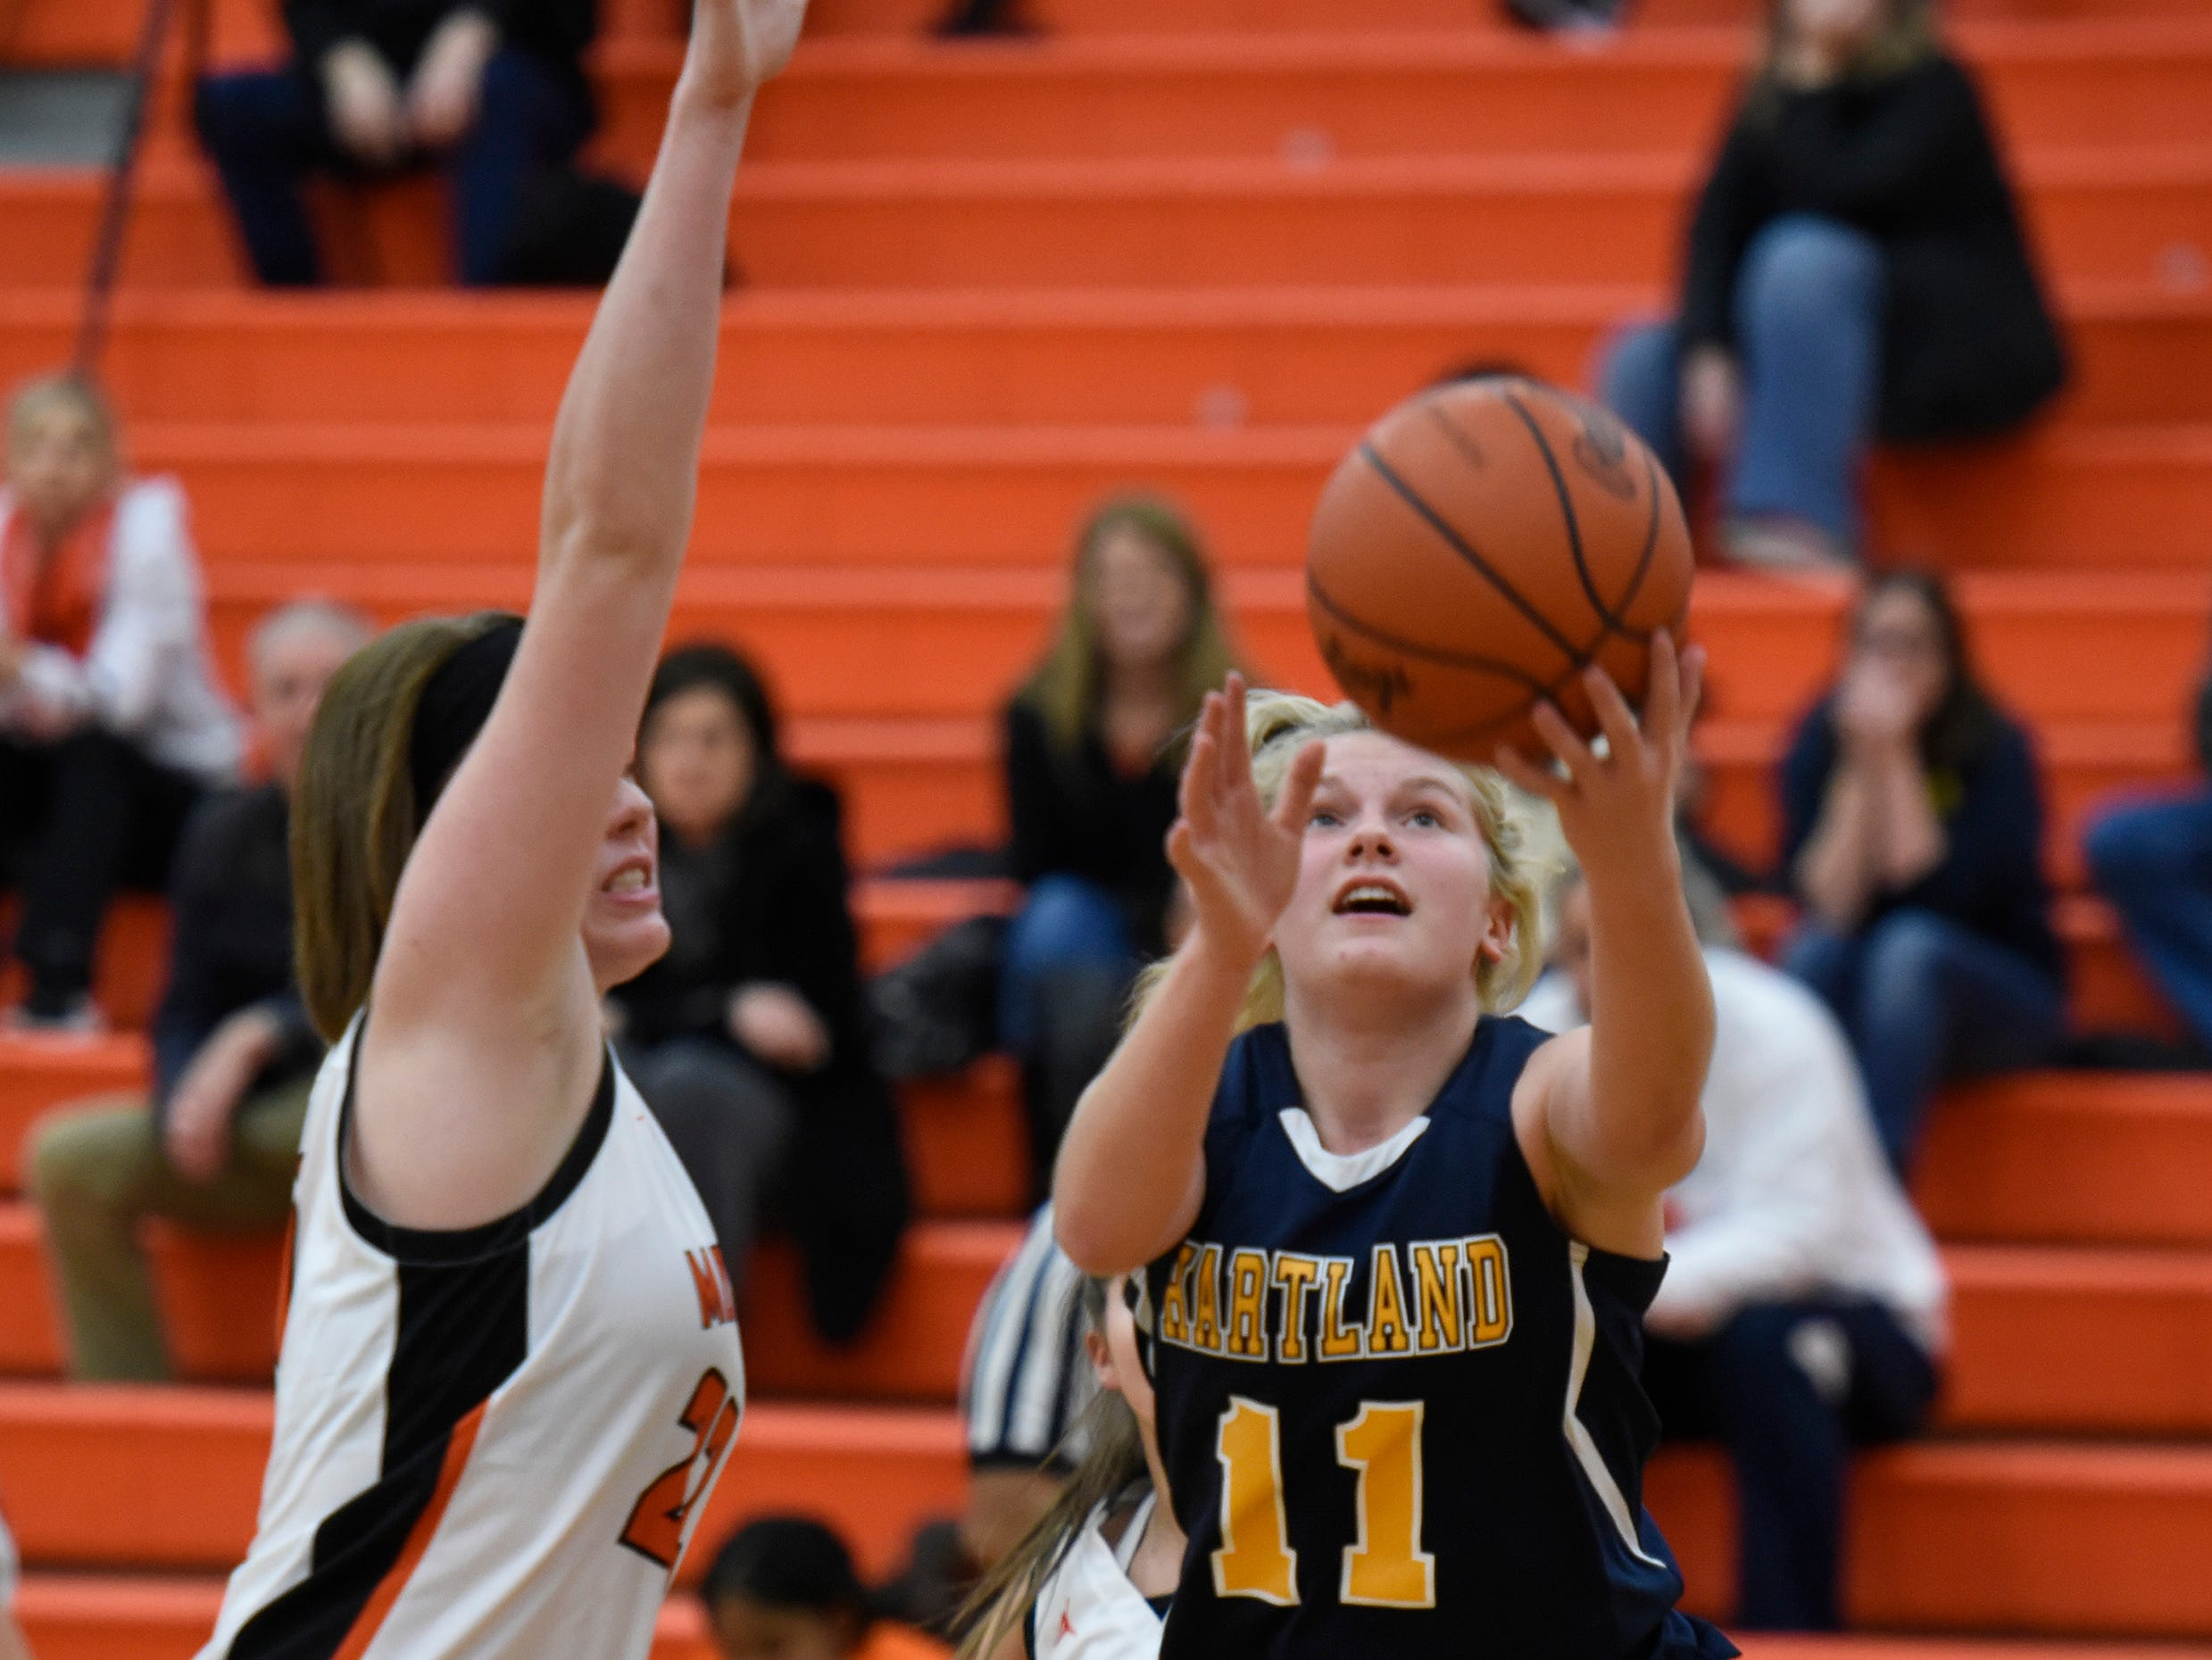 Hartland's Amanda Roach (11) drives by Northville's Nicole Martin (24) during a KLAA match up between the Mustangs and Eagles at Northville Jan. 8, 2019